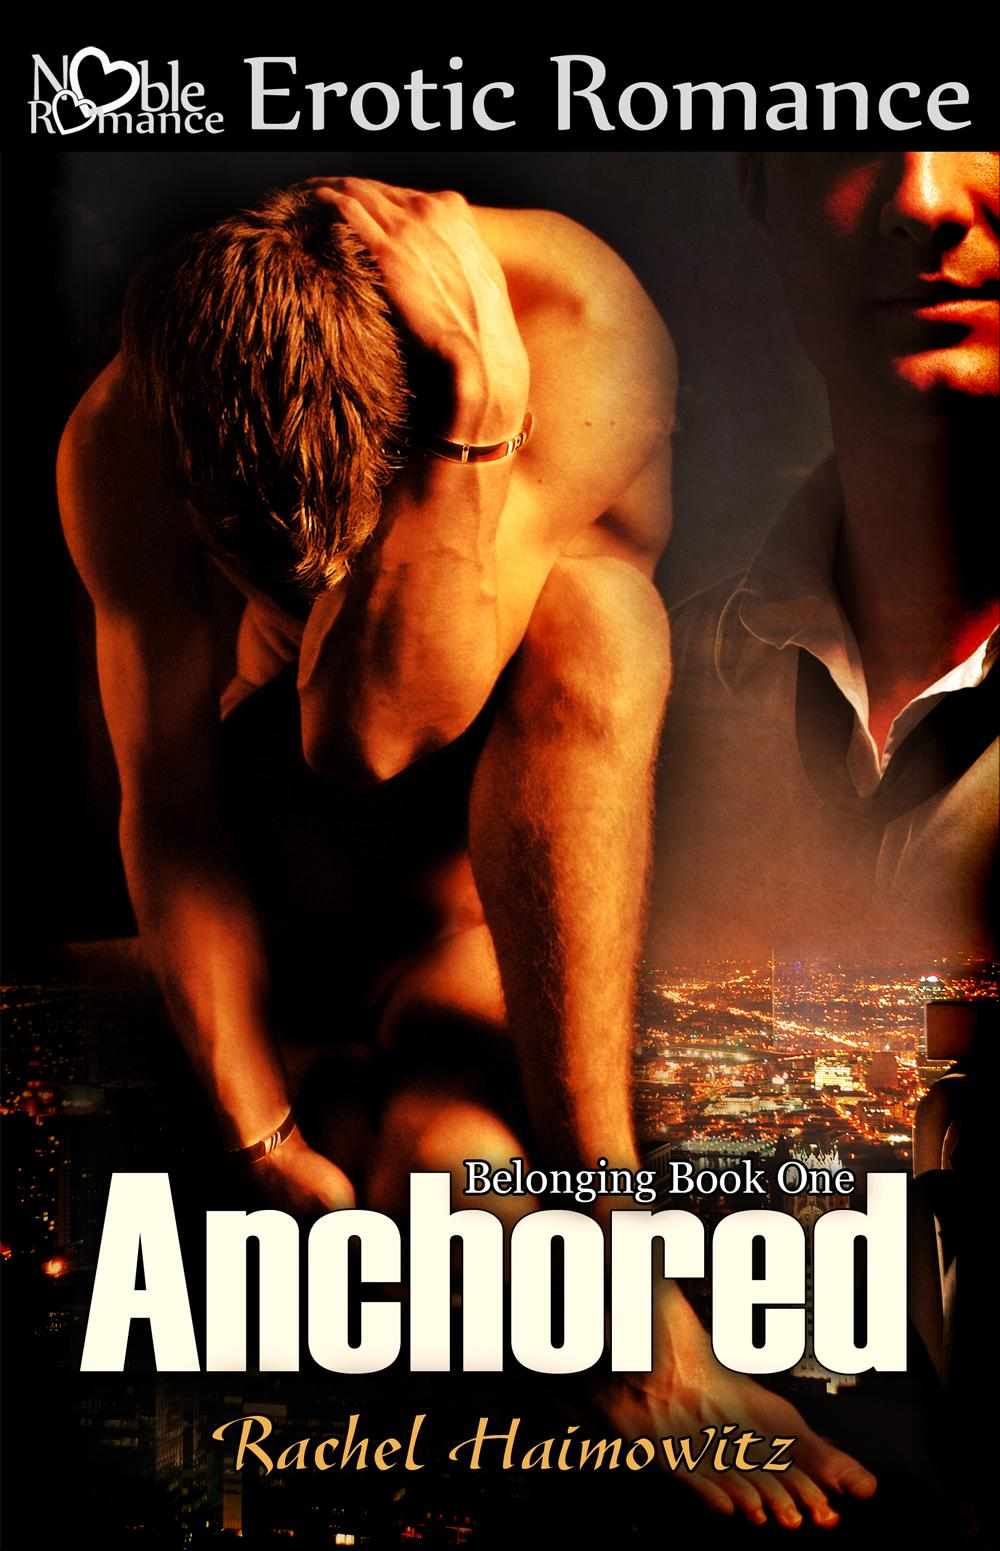 Belonging Book One - Anchored